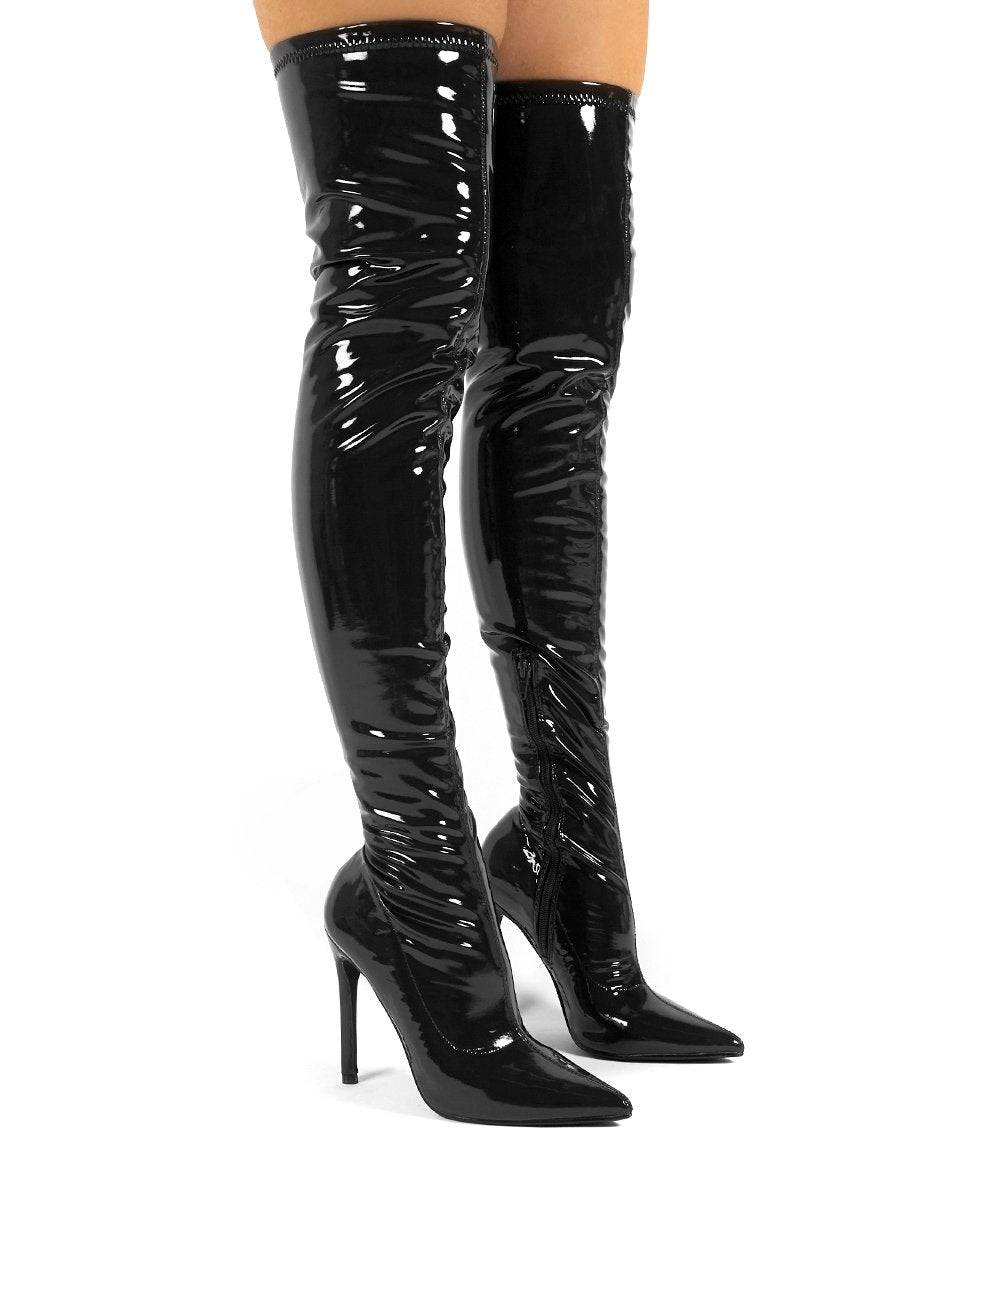 Public Desire US Confidence Wide Fit Black Patent Heeled Over The Knee PU Boot - US 5